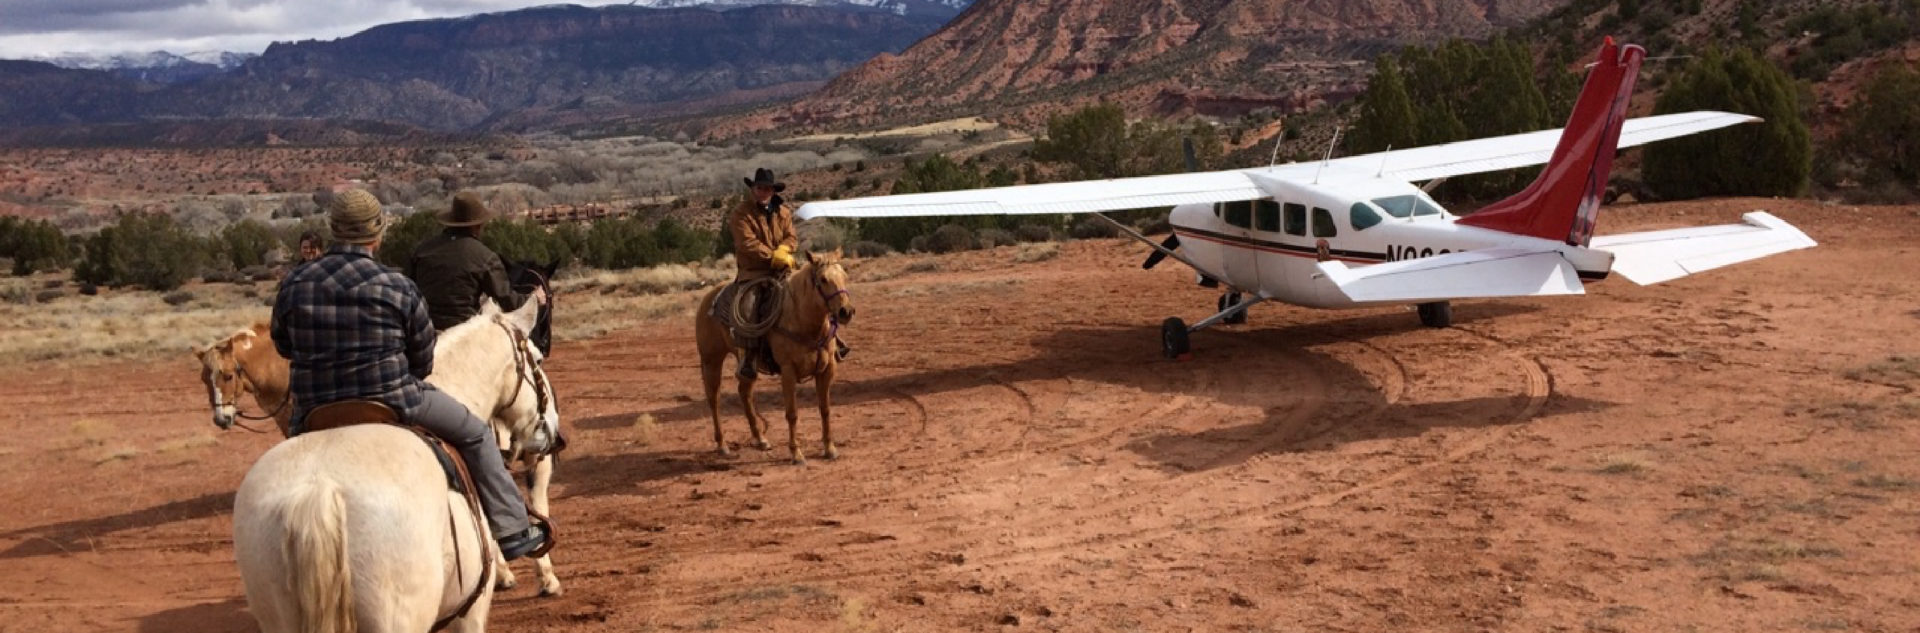 Three people on horses next to a plane in Moab